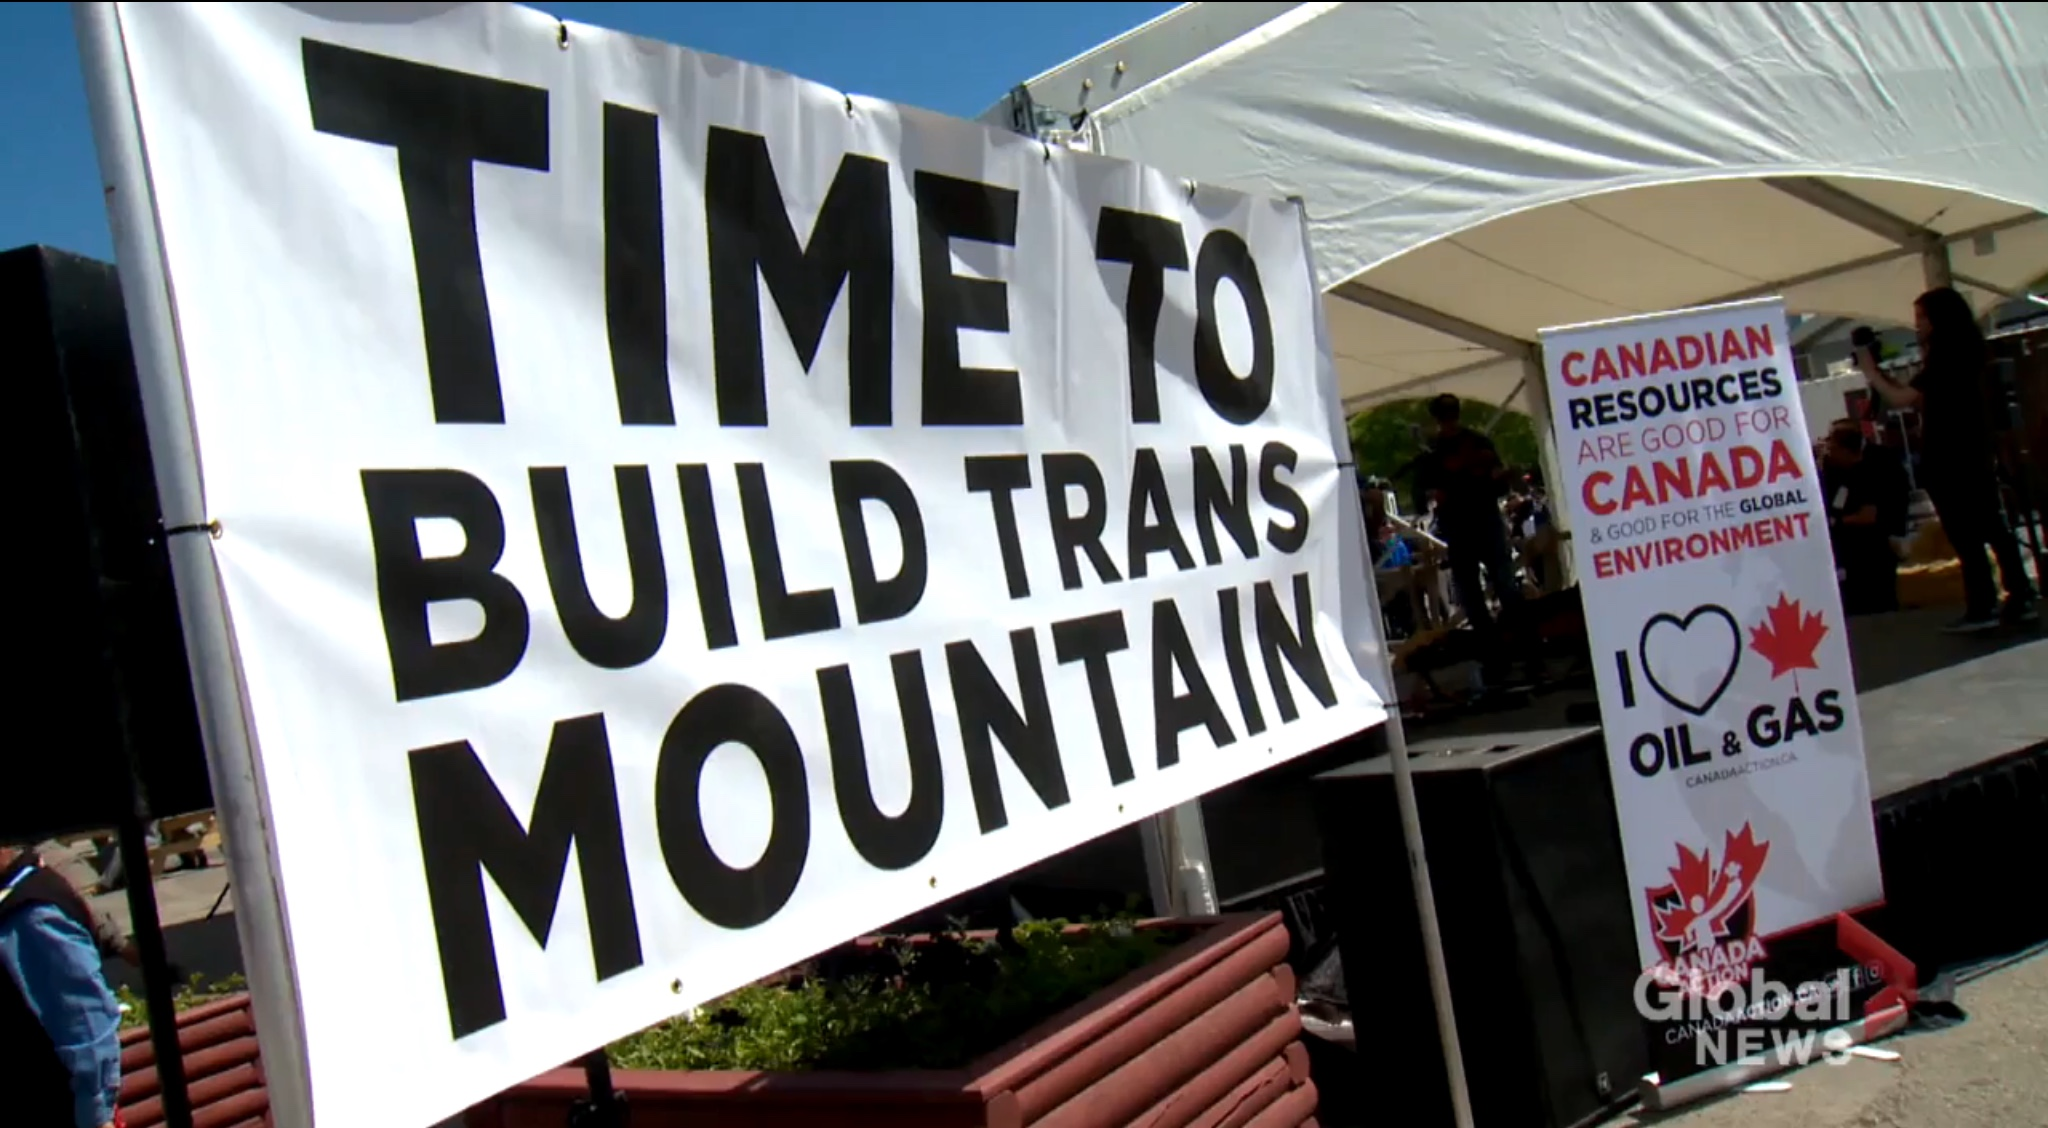 Demonstrators urge the Canadian government to complete the Trans Mountain pipeline from Edmonton to Vancouver. Global News screenshot, Sept. 5, 2019.